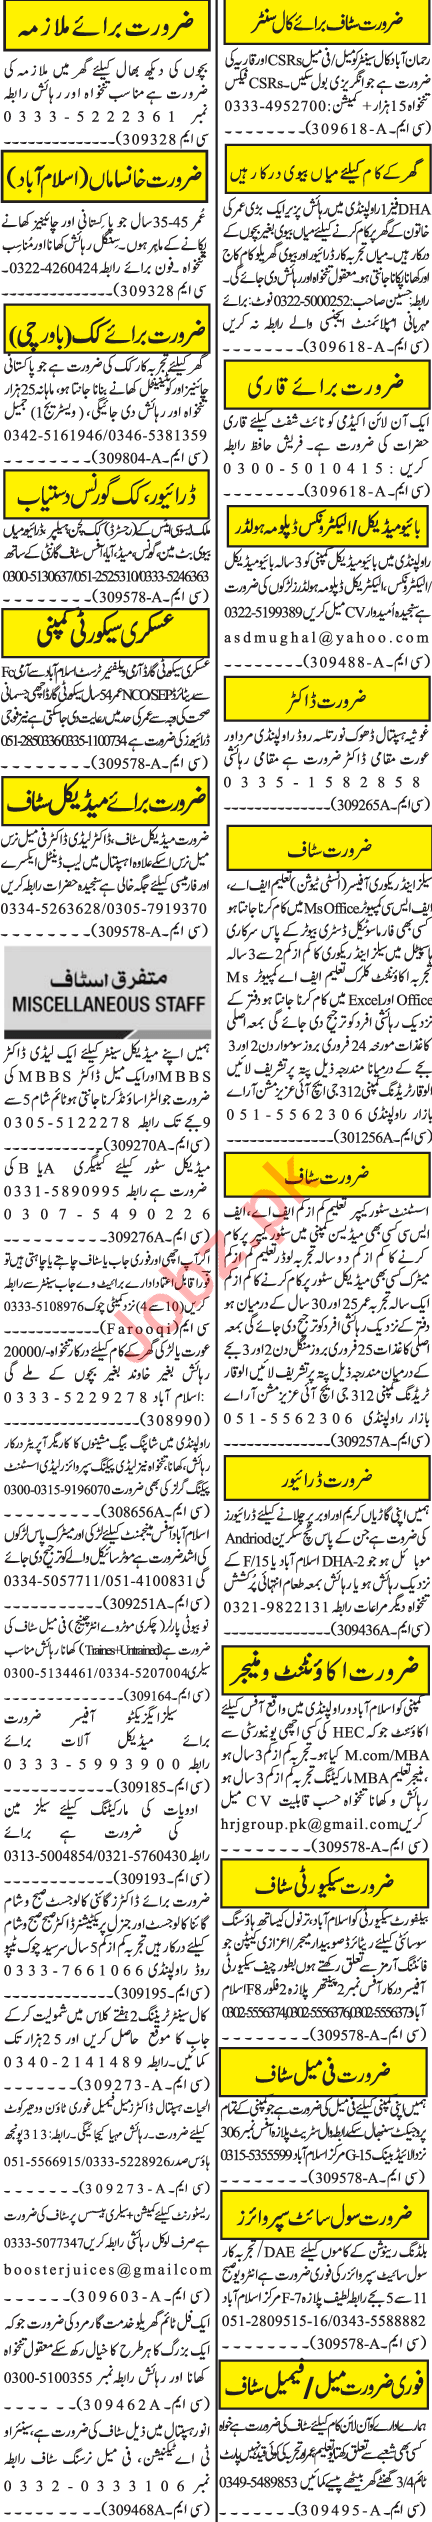 Jang Sunday Classified Ads 23rd Feb 2020 for General Staff